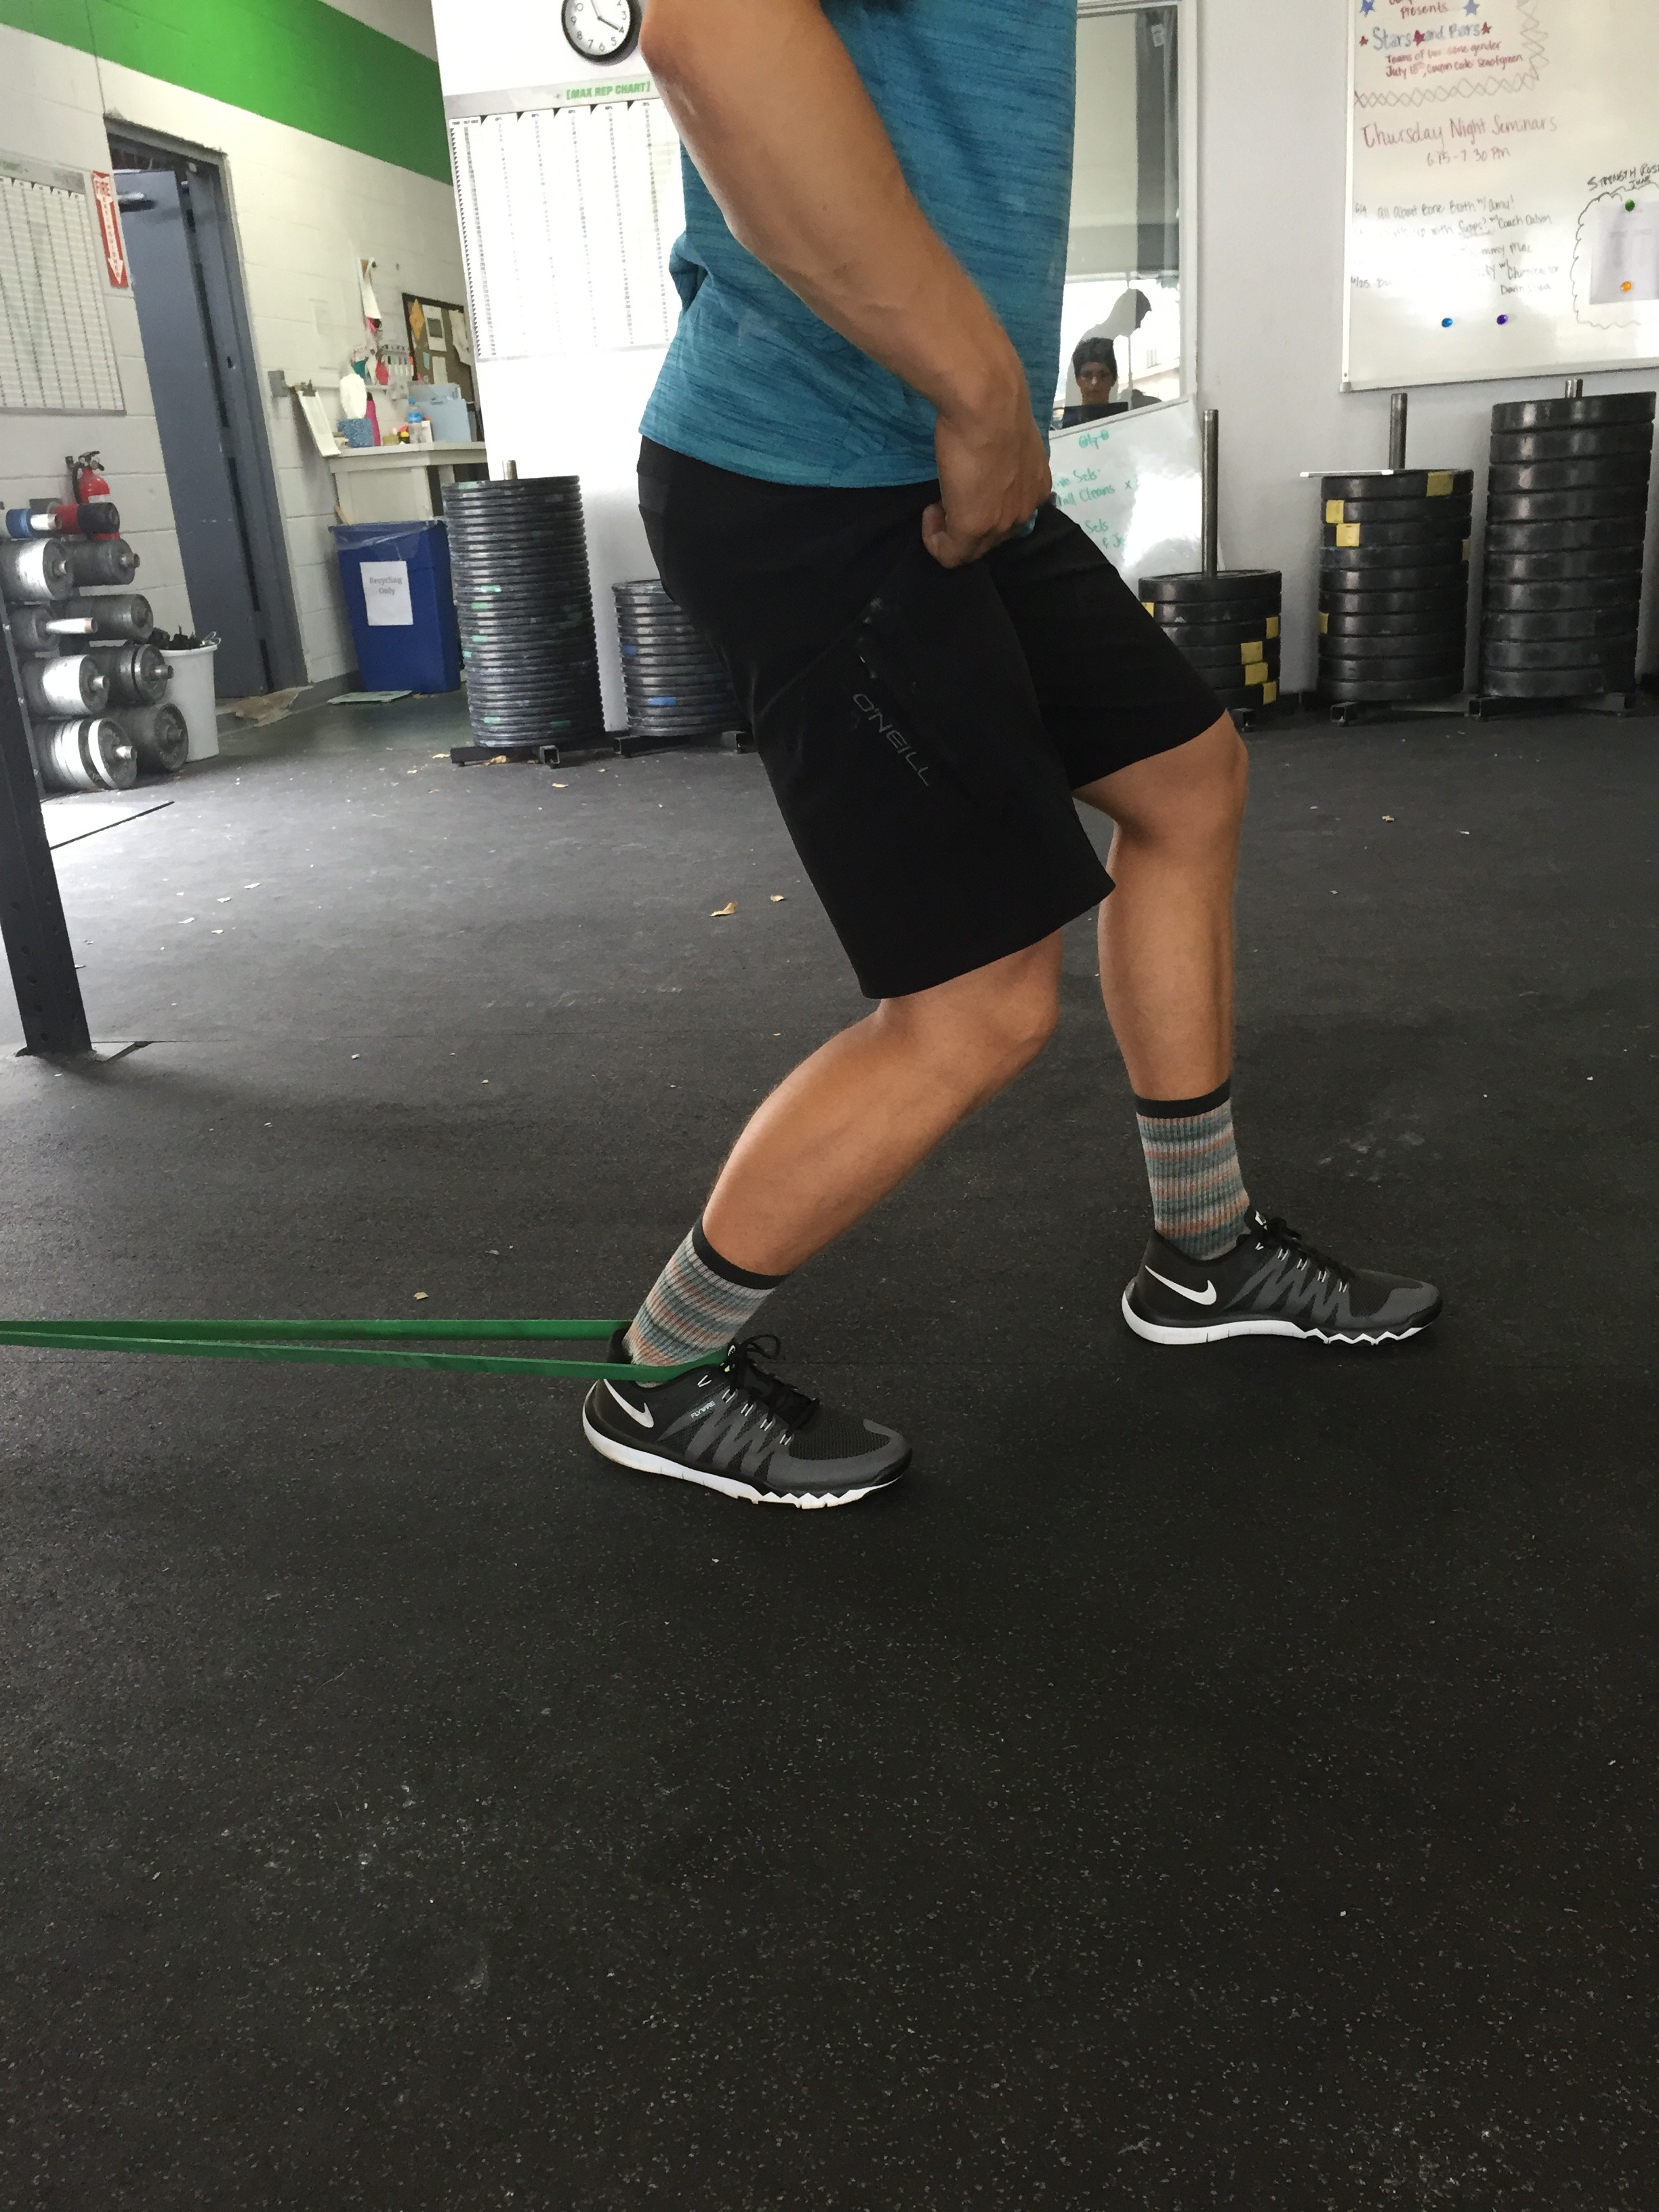 Ankle Strengthening Exercises To Improve Your Ankle Mobility Invictus Fitness